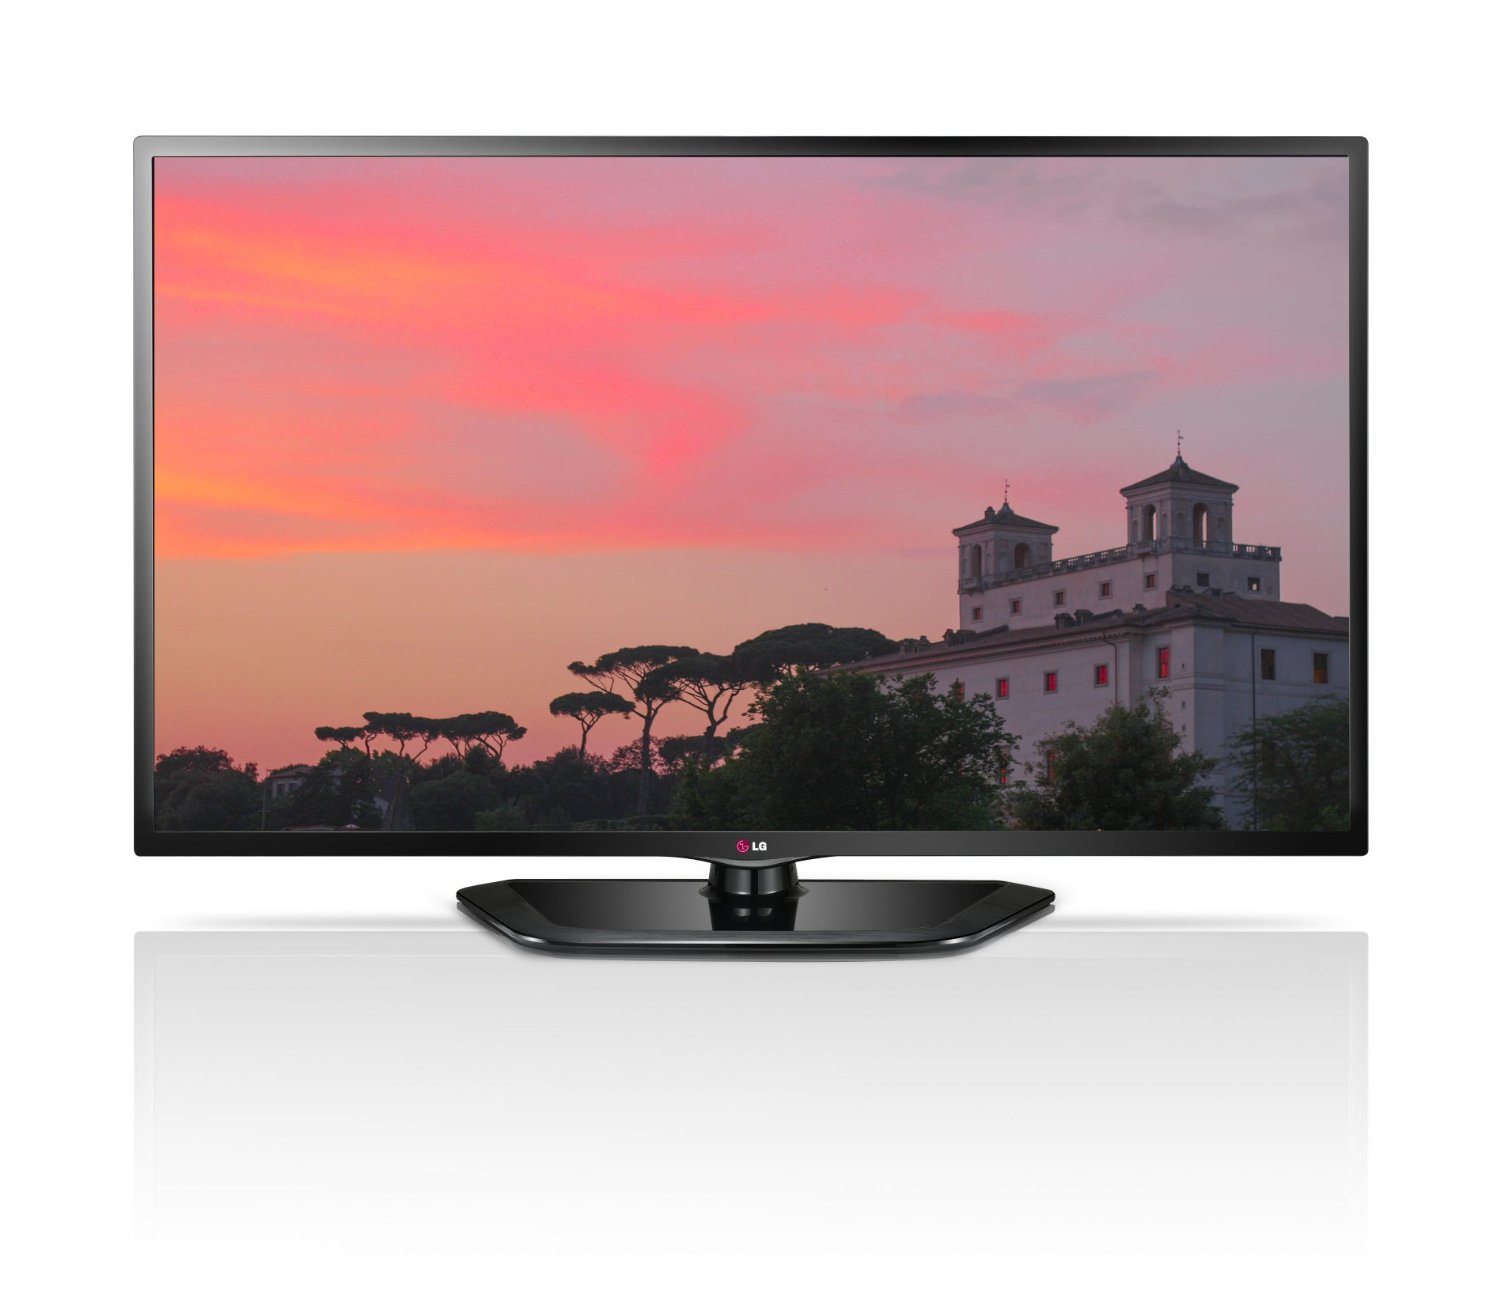 LG Electronics 32-Inch 720p LED TV